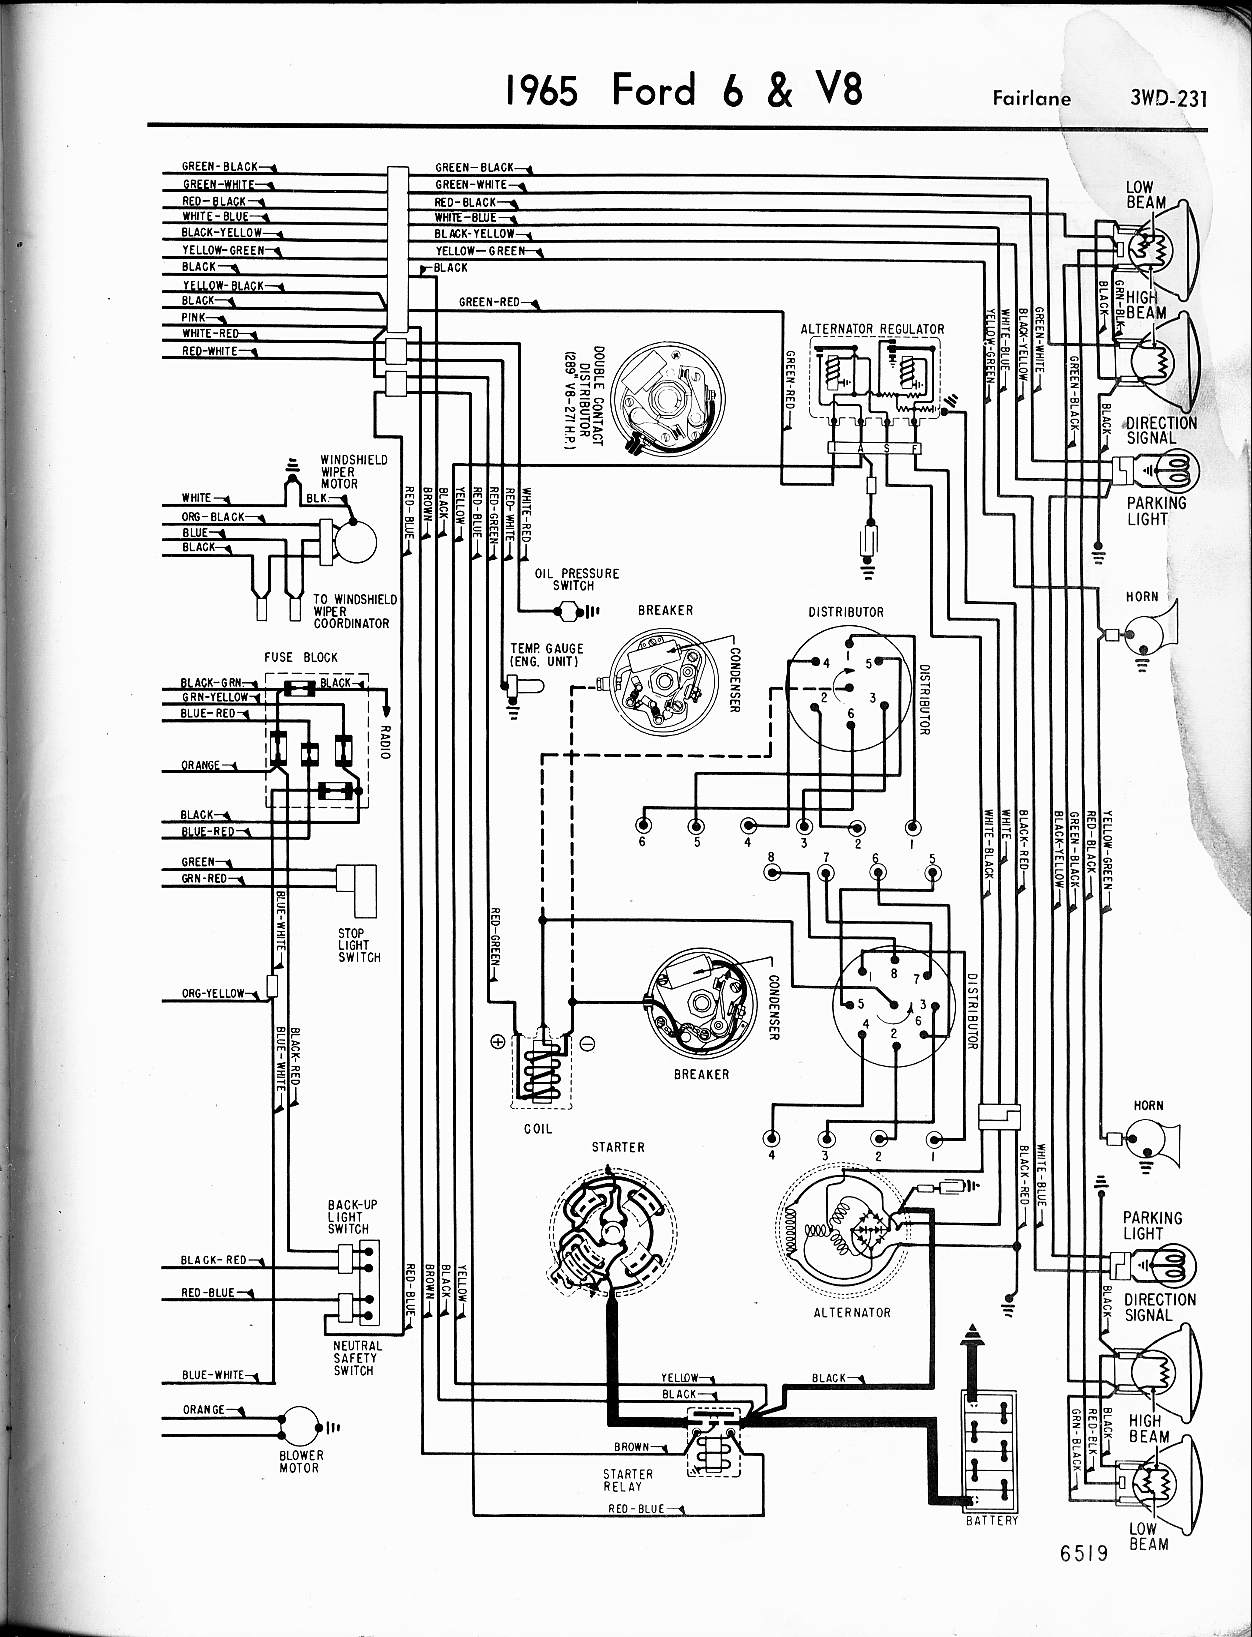 1967 Ford F100 Diagram - G9.igesetze.de •  Ford Alternator Wiring Diagram on ford starter wiring diagram, 1966 ford backup light wiring diagram, 1966 ford ignition switch wiring diagram, 1966 ford f-250 wiring diagram, ford 3 wire alternator diagram, 1966 mustang color wiring diagram, 1966 ford truck wiring diagram, 1966 ford charging system diagram, ford truck alternator diagram, 1966 mustang horn wiring diagram, 1966 ford thunderbird wiring diagram, 66 mustang ignition wiring diagram, 1966 mustang engine wiring diagram, 67 mustang ignition wiring diagram, 1966 ford mustang alternator, ford one wire alternator diagram, 1996 mustang wiring diagram, 1966 ford galaxie wiring-diagram, 1966 mustang dash wiring diagram, 1966 ford fuel gauge diagram,